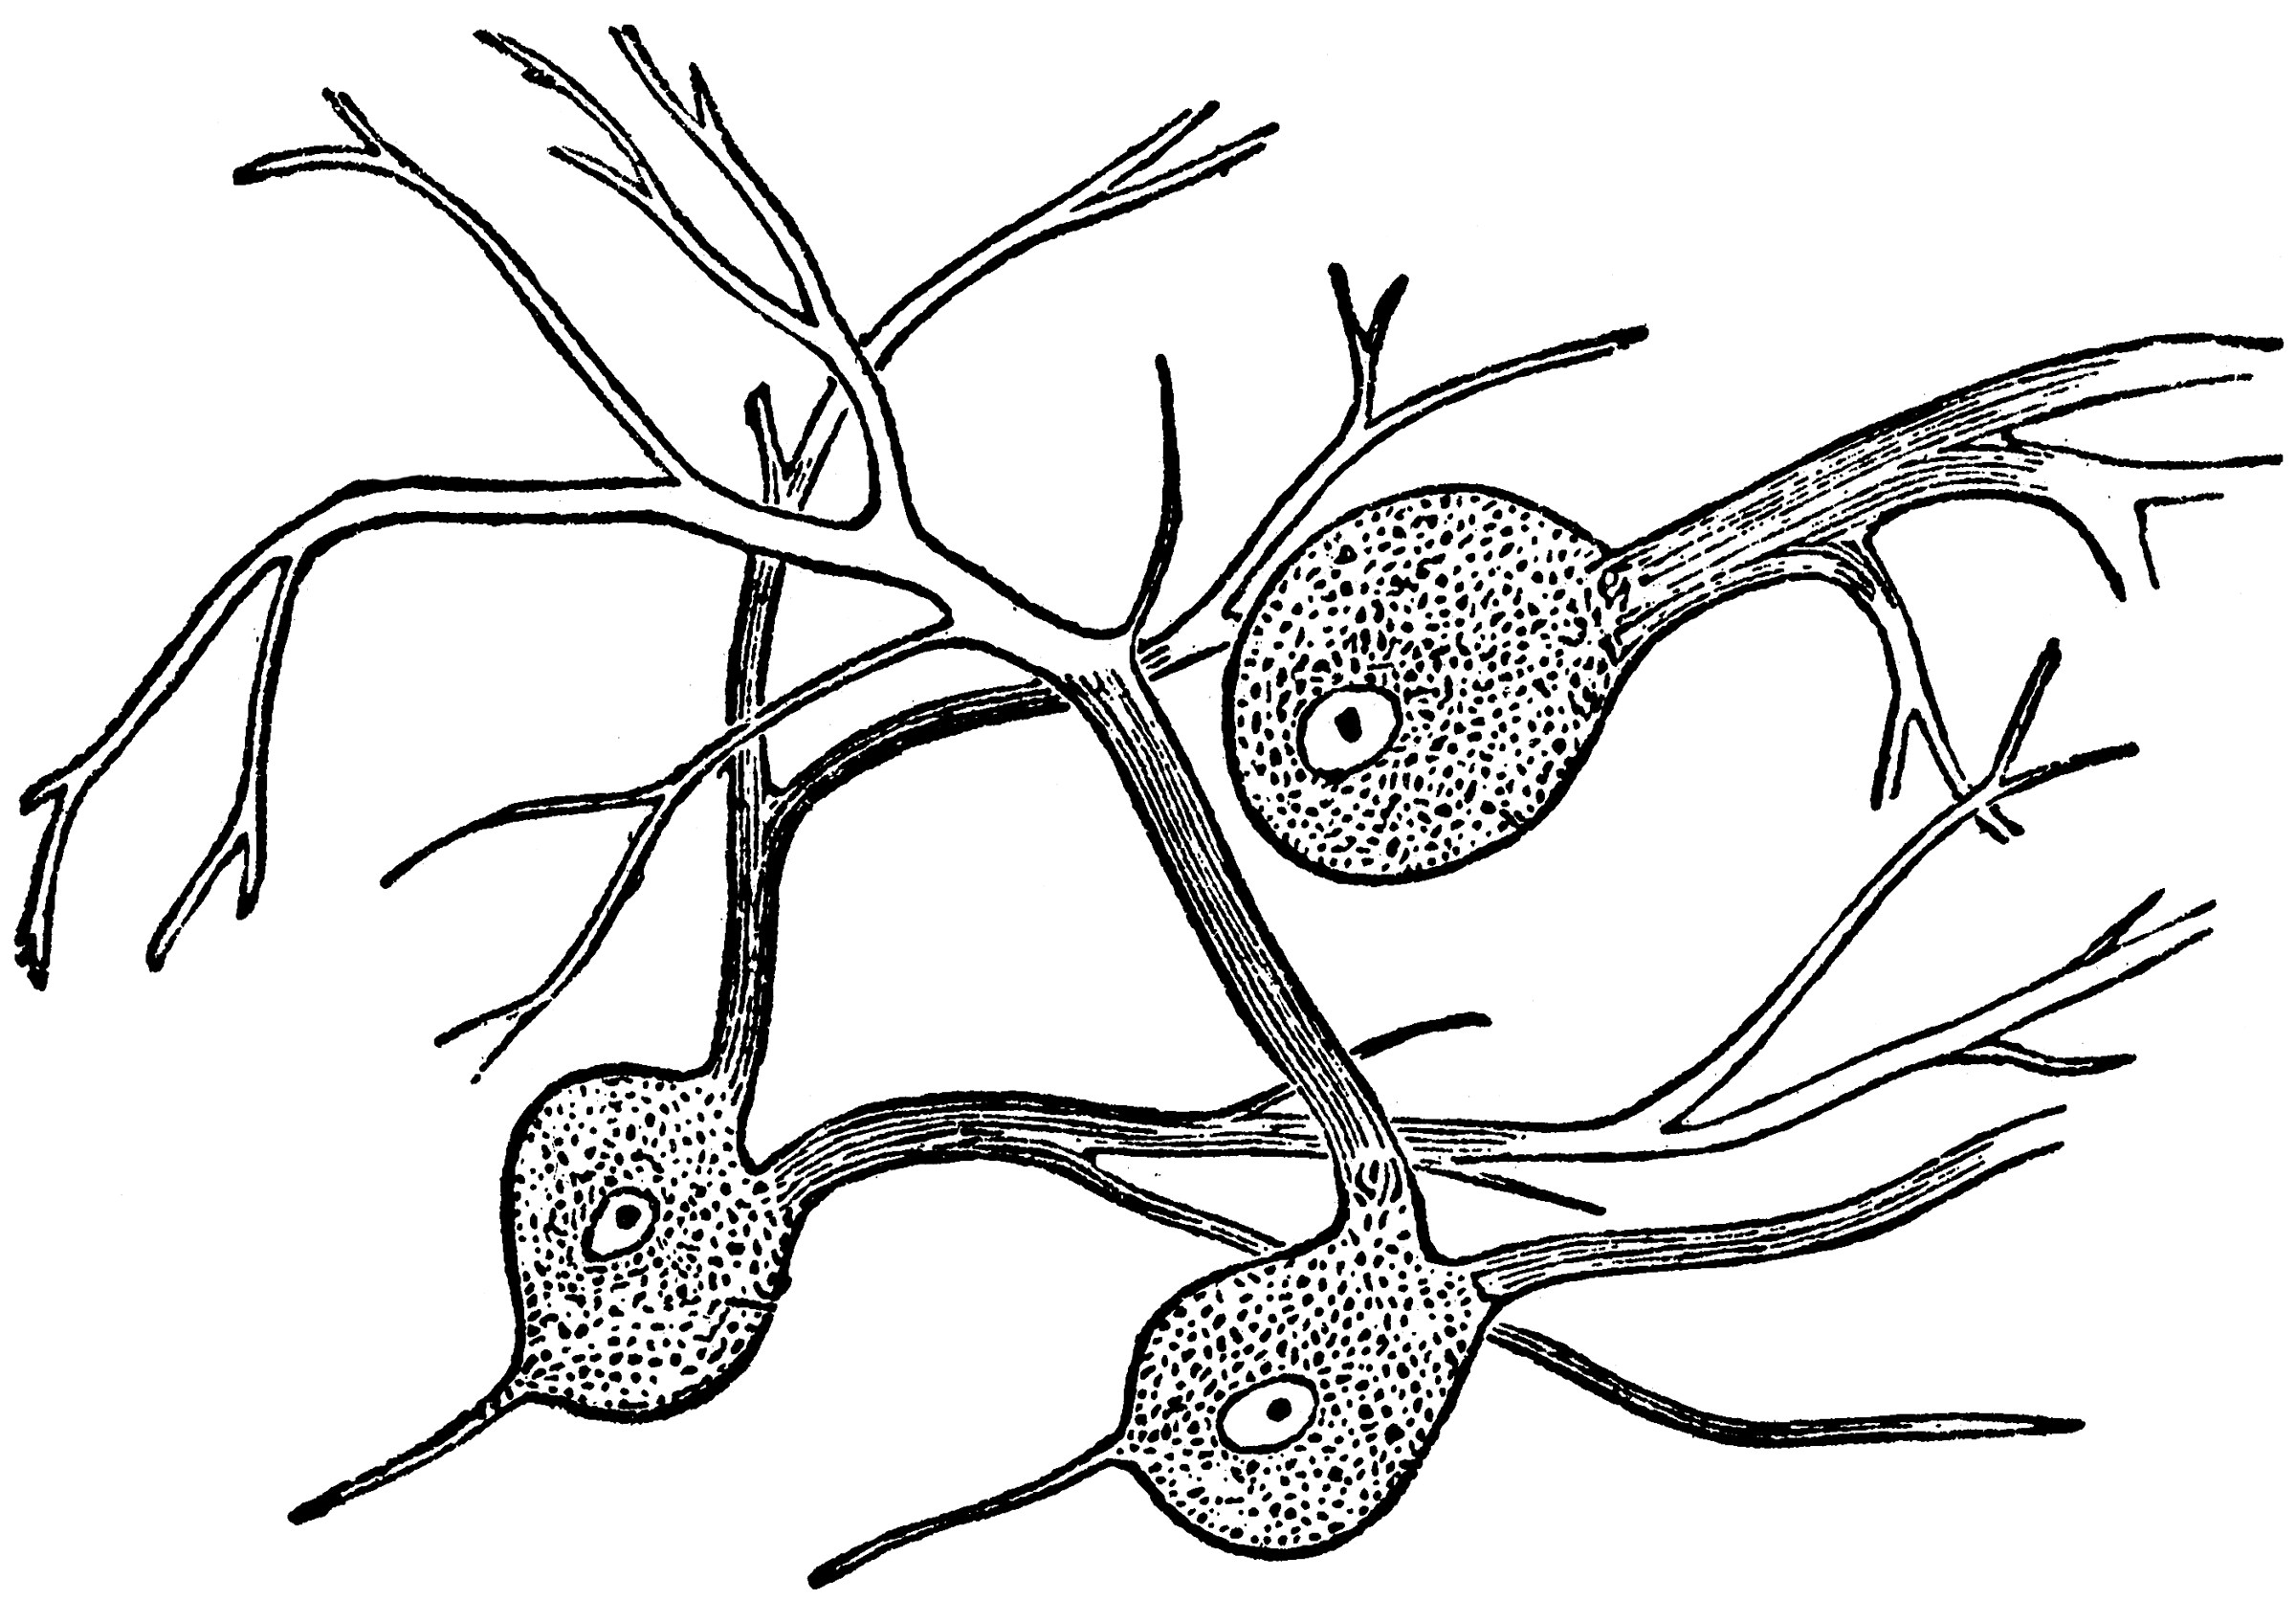 Nerve Cell Coloring Pages